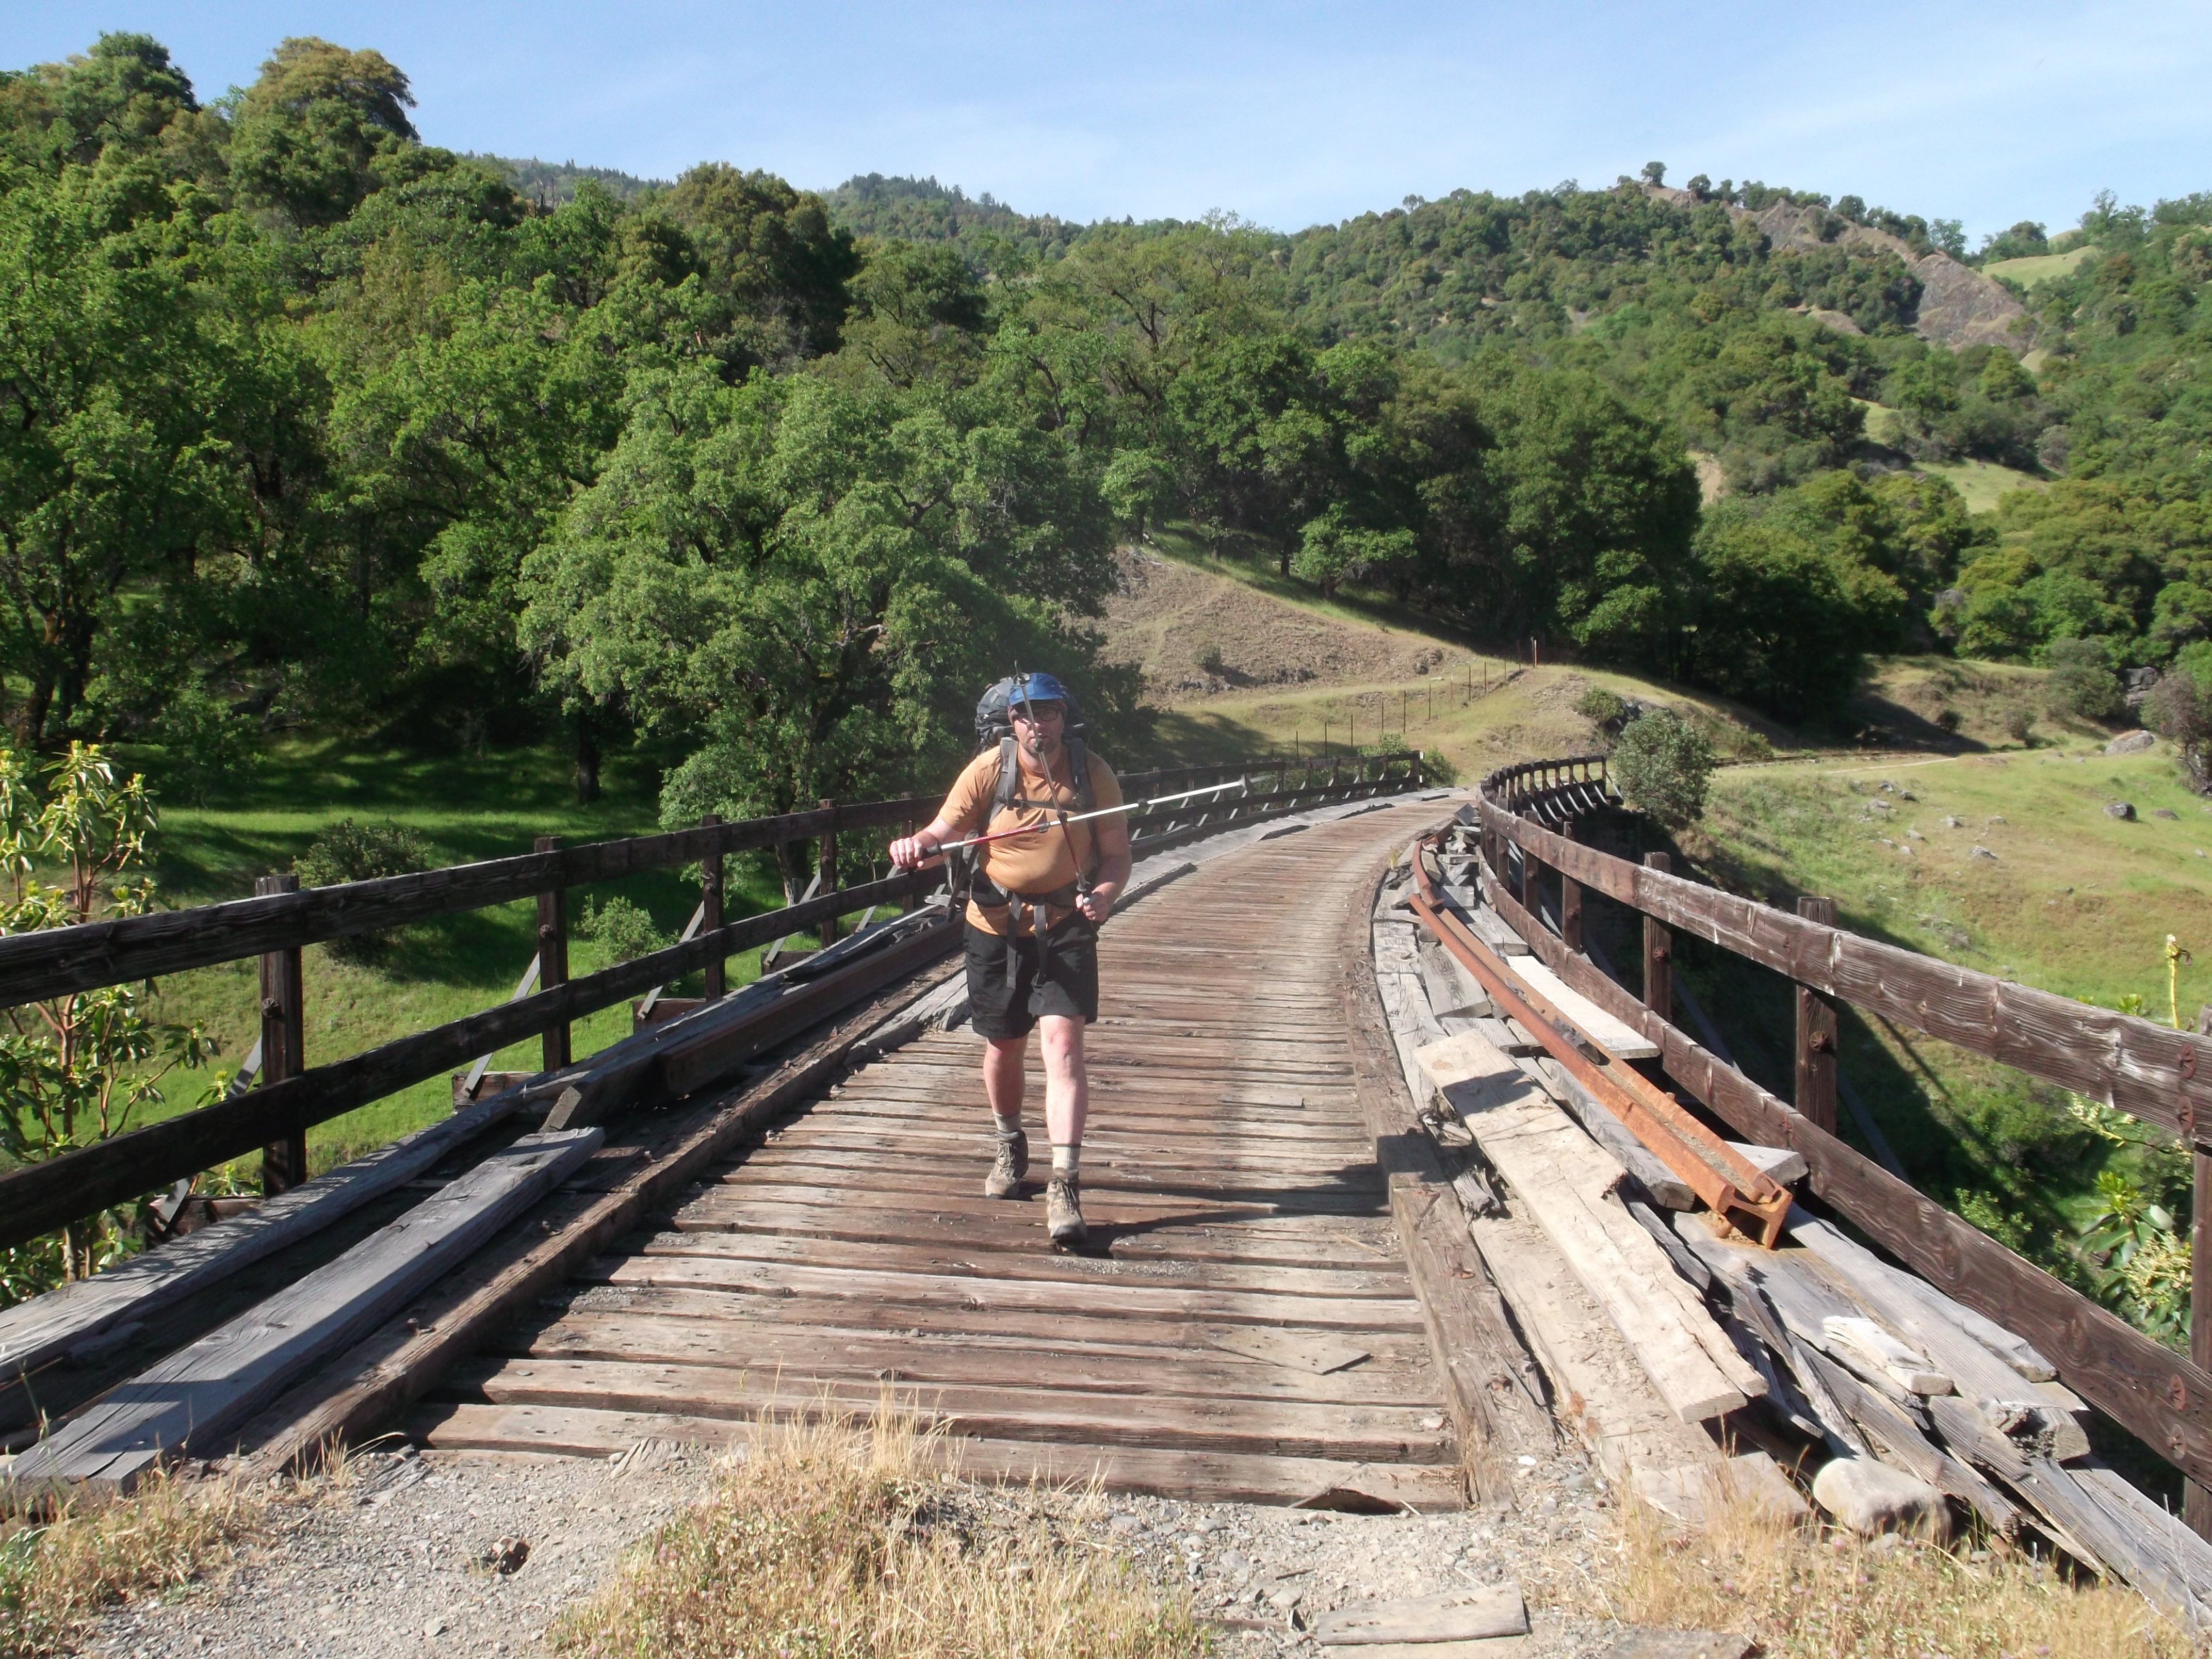 Chalk wards off vampires, locals, and most of all trolls, as he crosses the Bell Springs Creek Bridge. (photo by D. Speredelozzi)